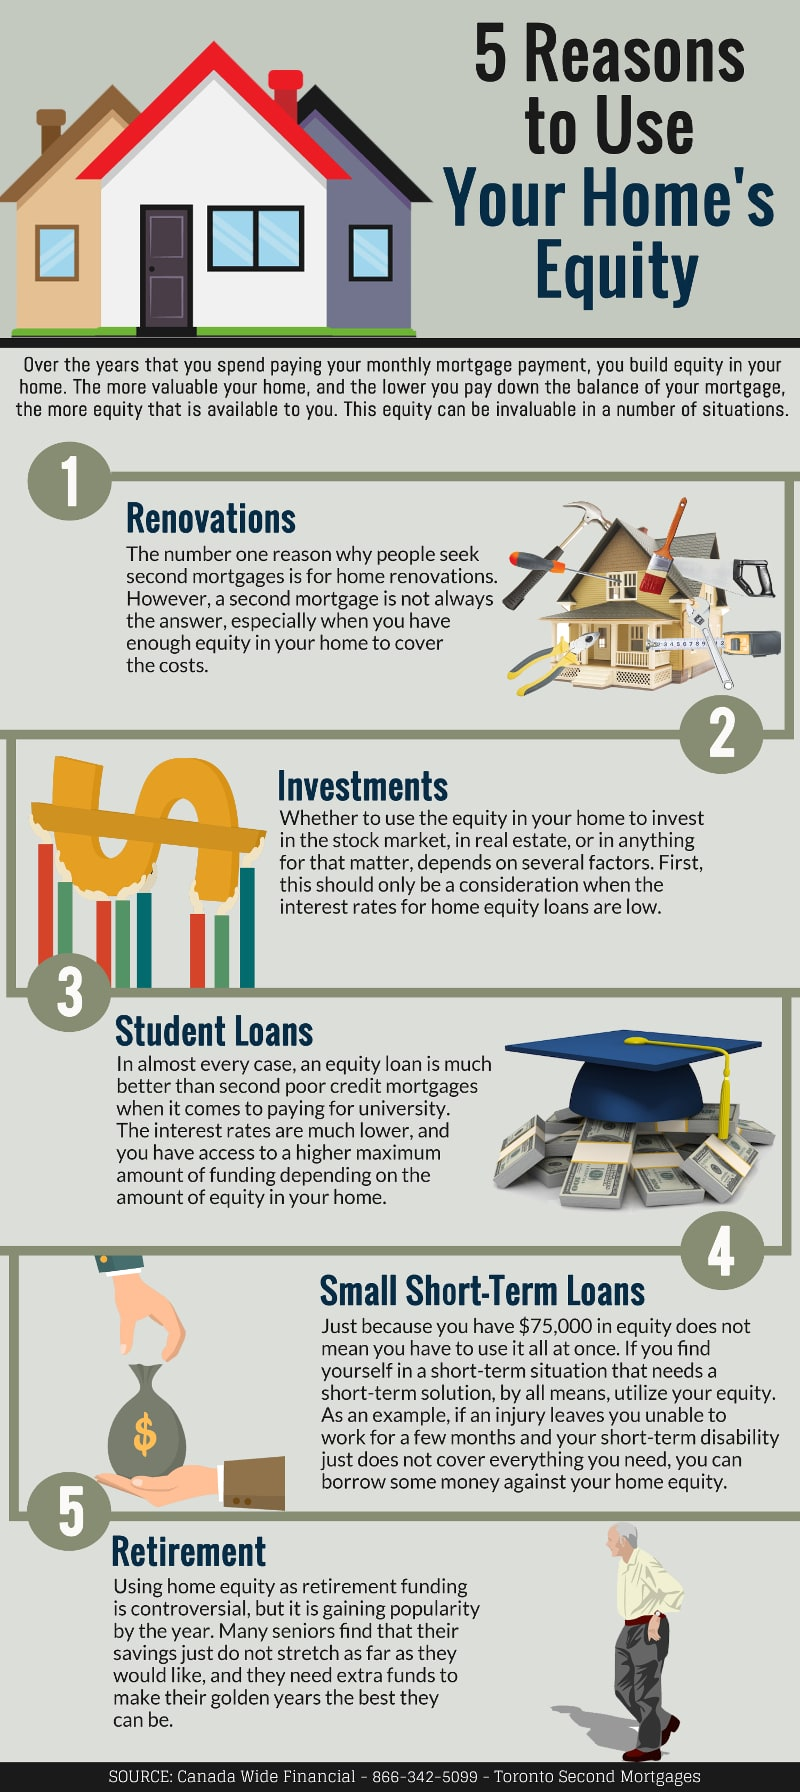 5 Reasons to Use Your Homes Equity - Infographic